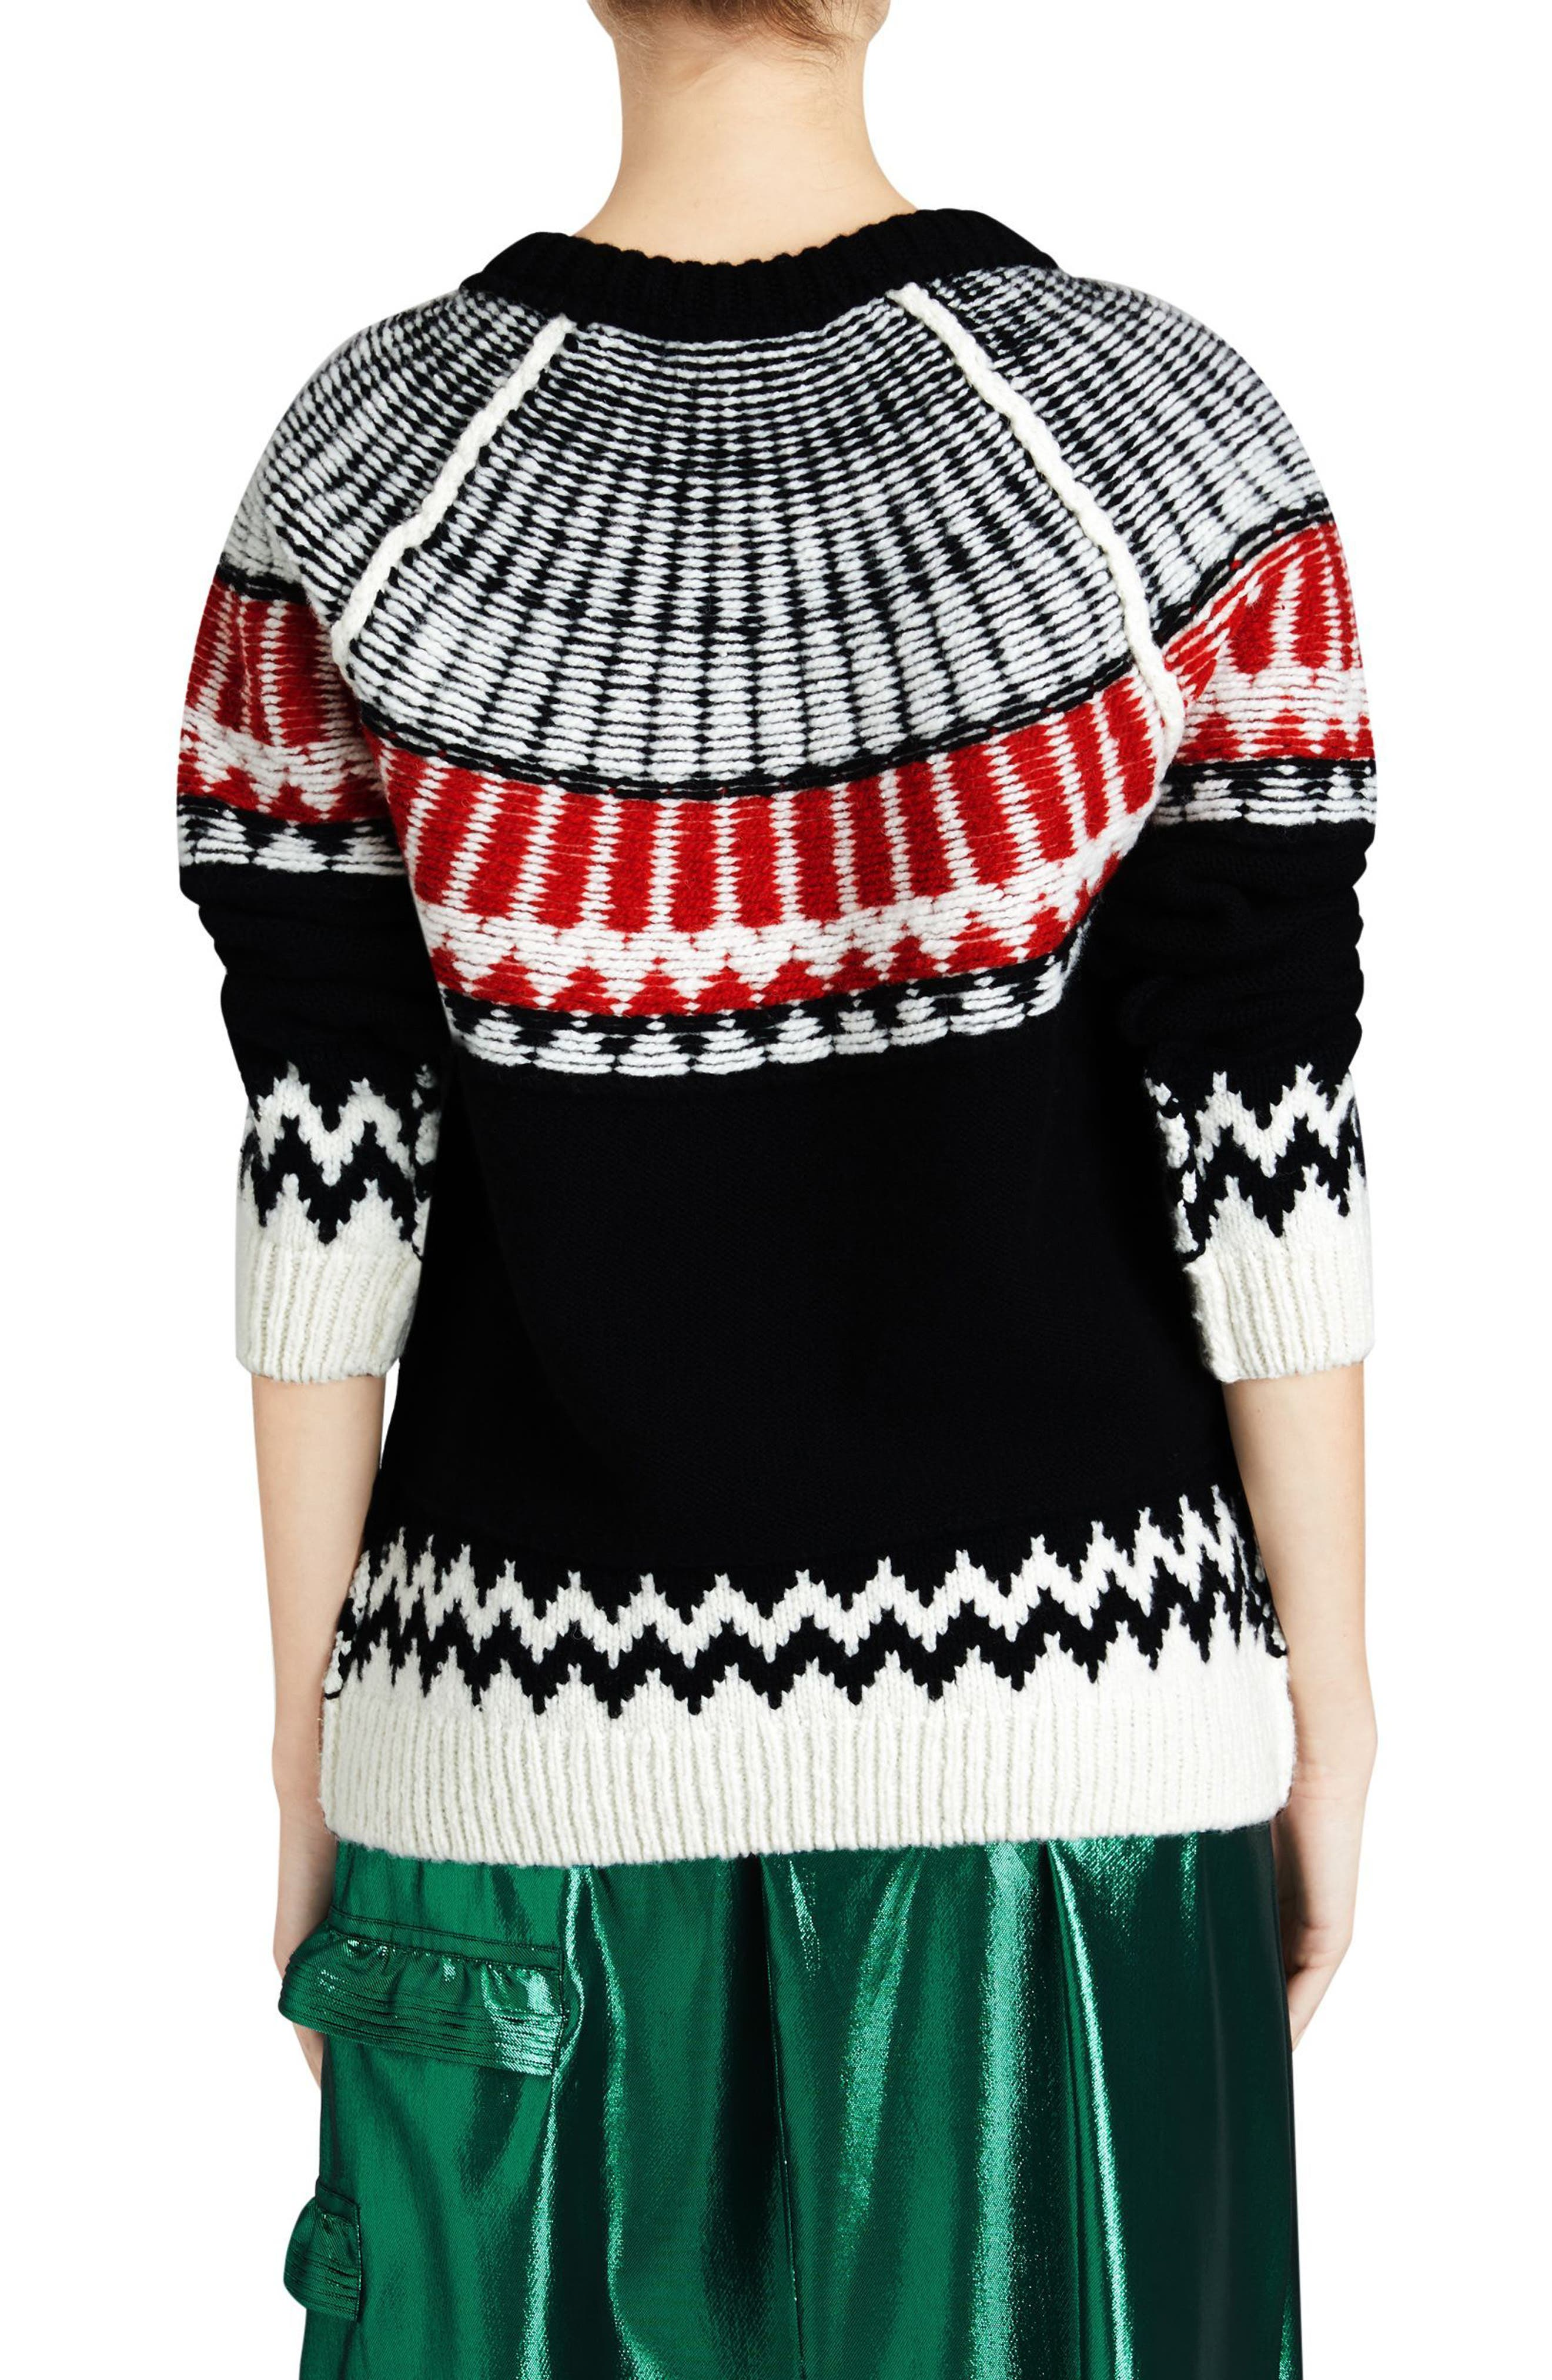 Trycroft Fair Isle Wool Blend Sweater,                             Alternate thumbnail 2, color,                             Black/ Military Red